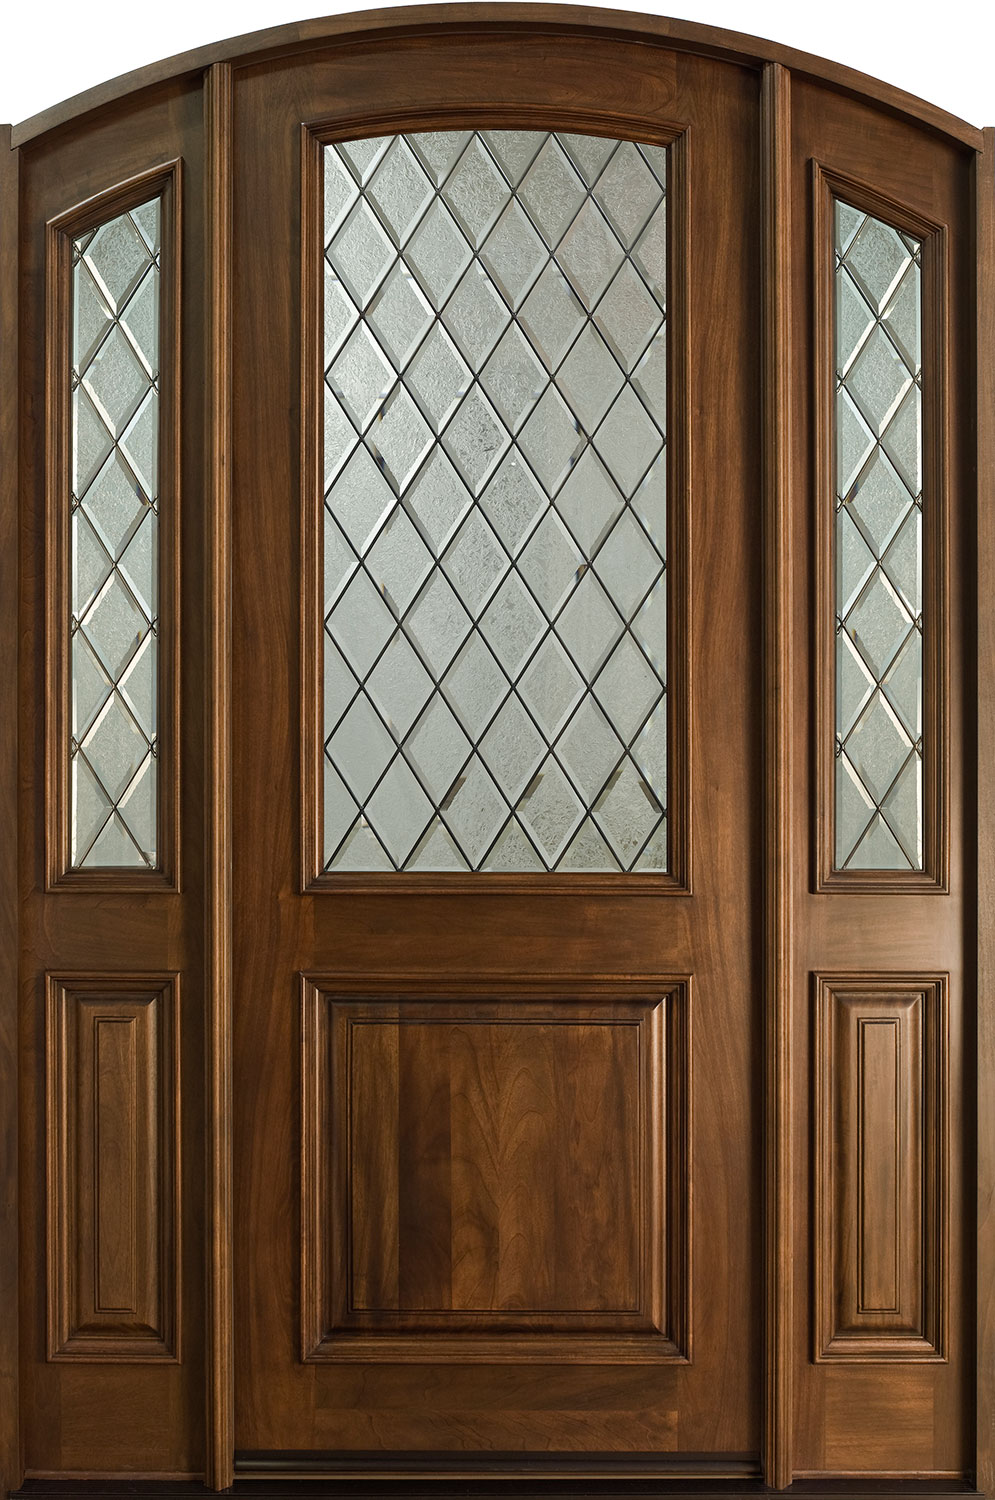 French Mahogany Wood Front Door  - GD-552DG 2SL